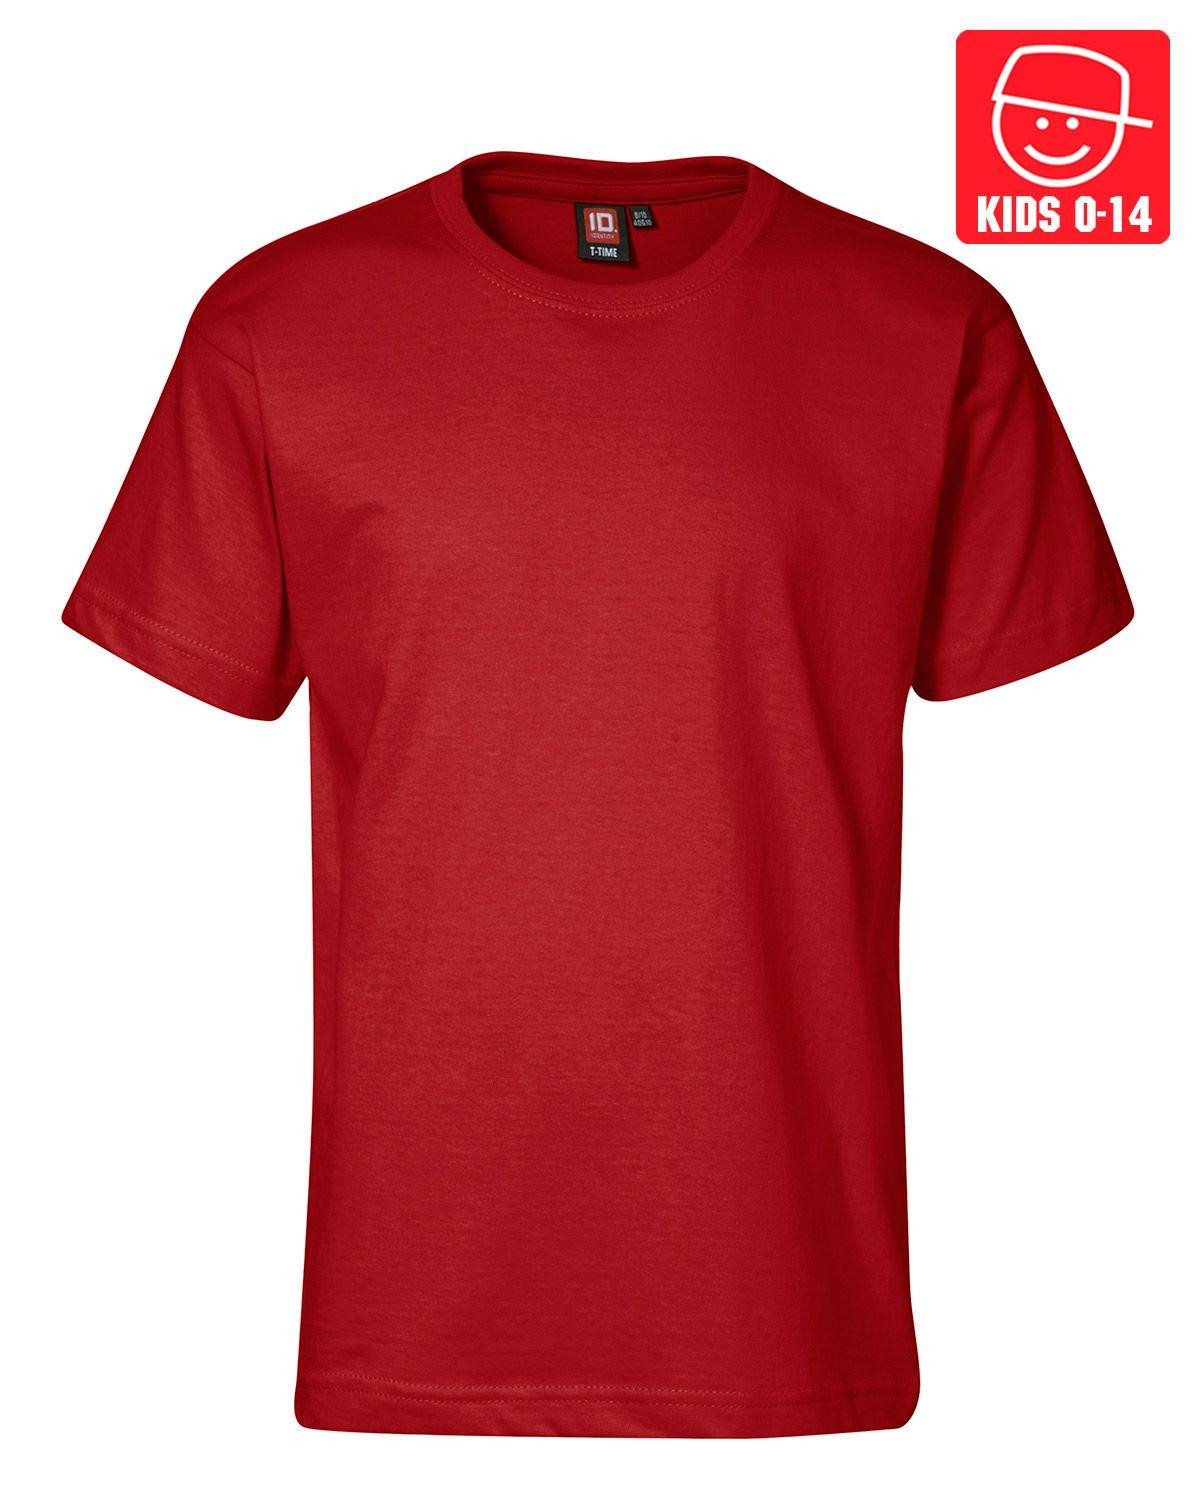 Image of   ID T-TIME T-shirt (Rød, 128)